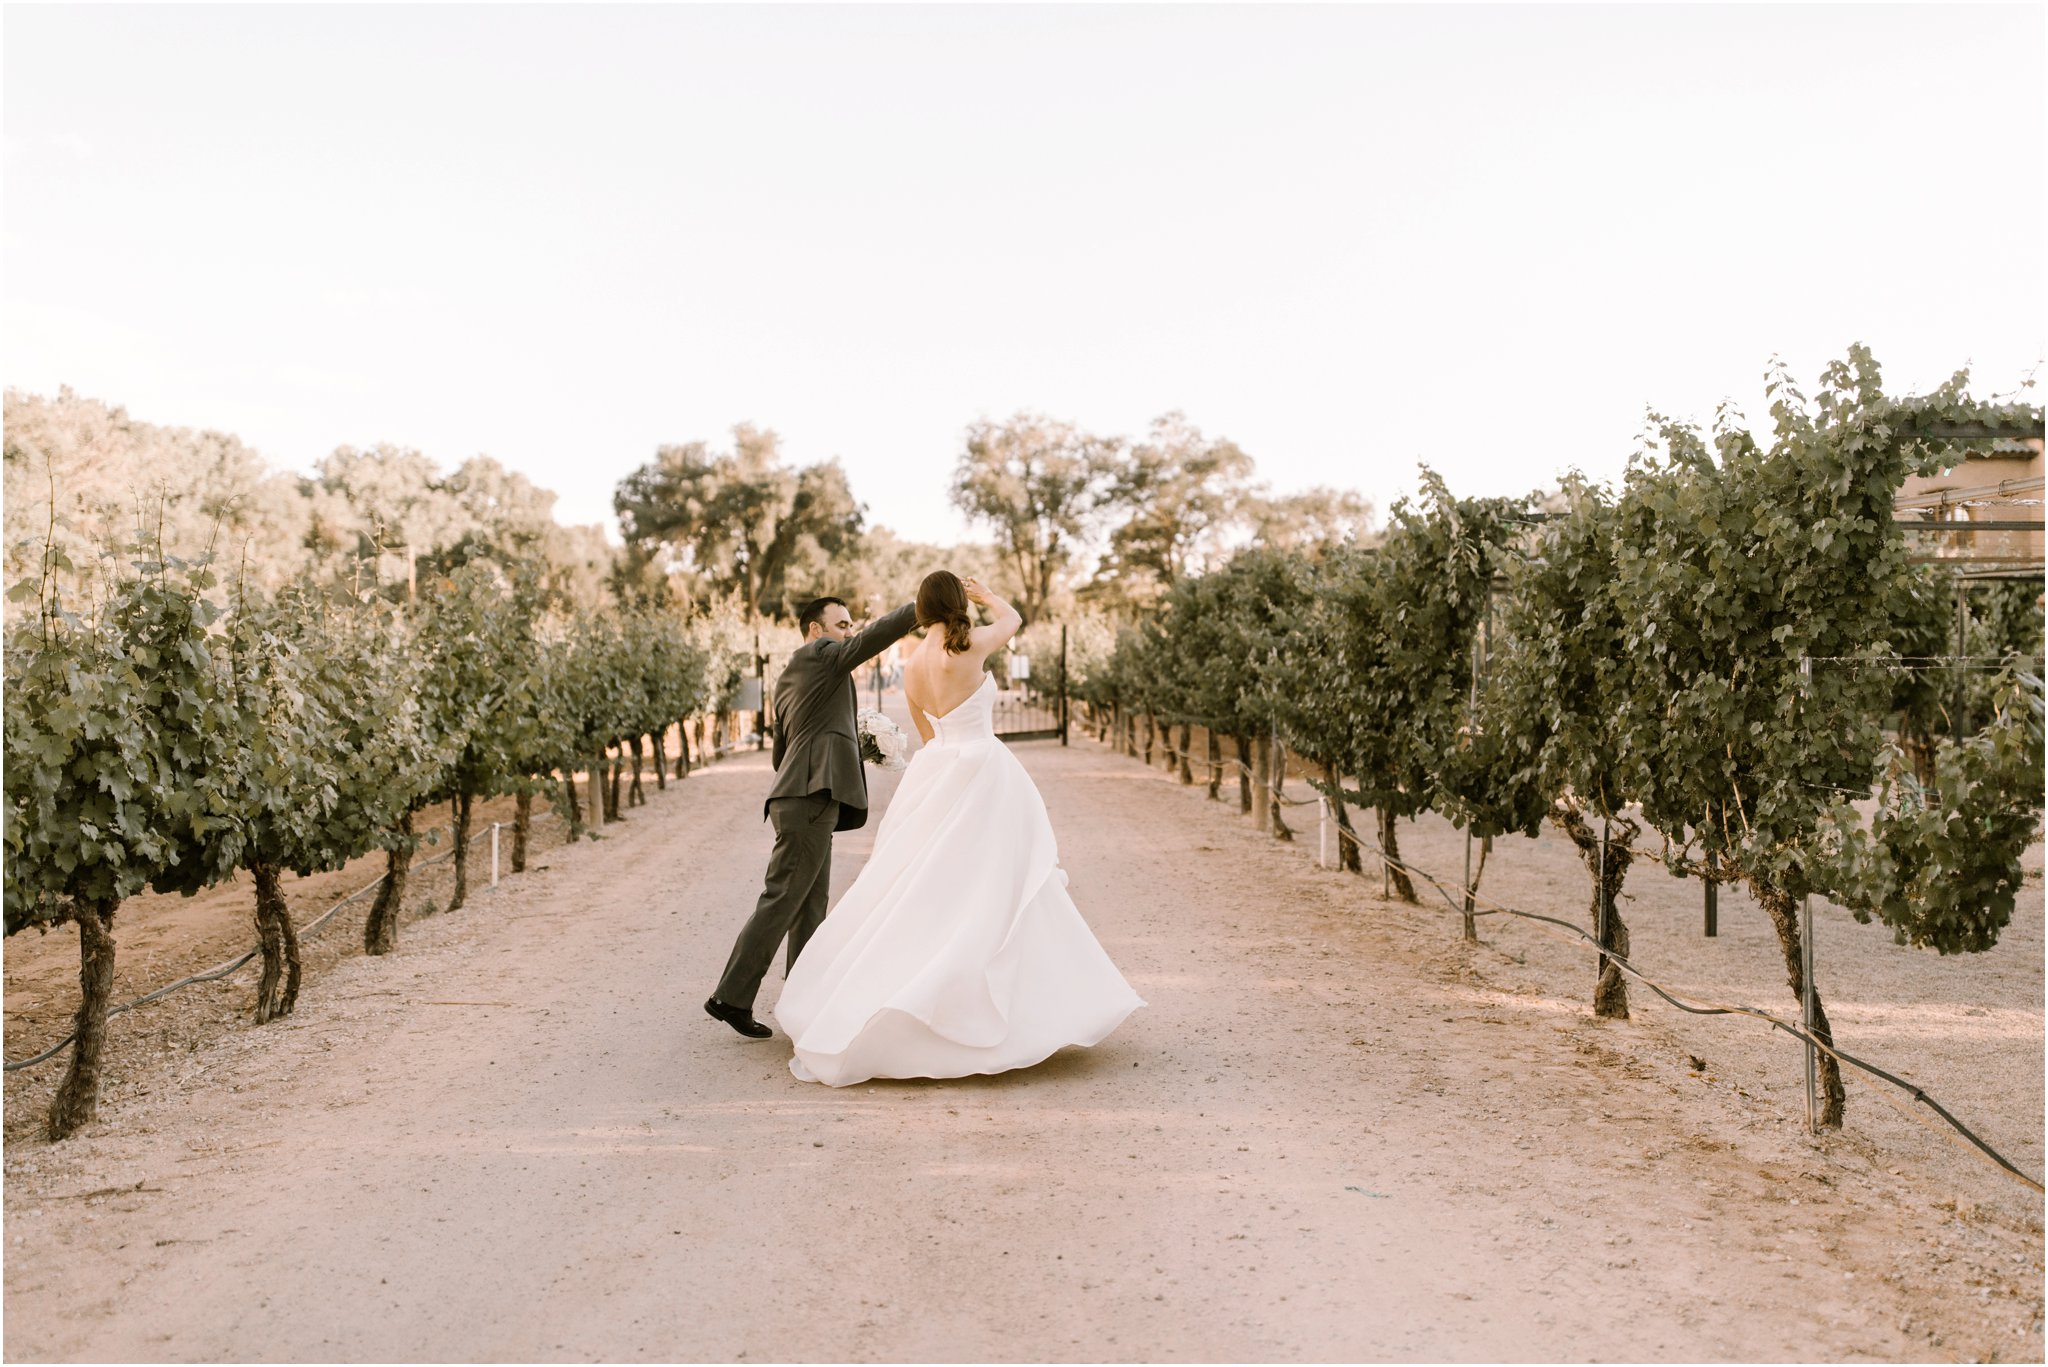 0216Casa Rodena Winery Wedding, Inn and Spa at Loretto wedding, Santa Fe wedding photographers, blue rose photography